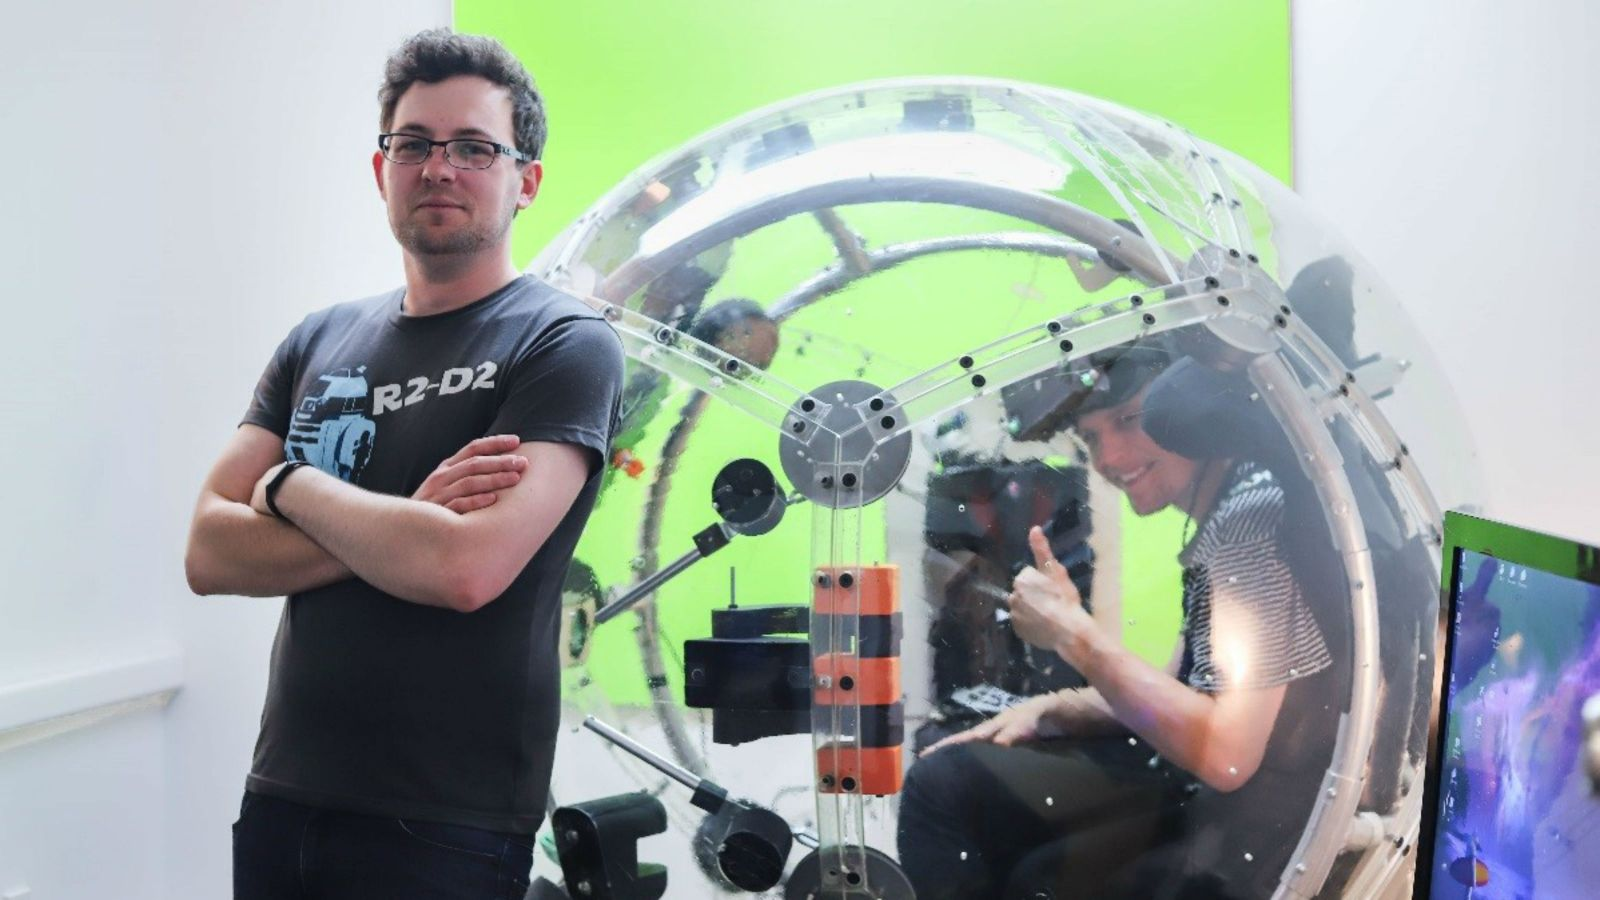 Terry Miller stands beside the immersive VR ball he developed